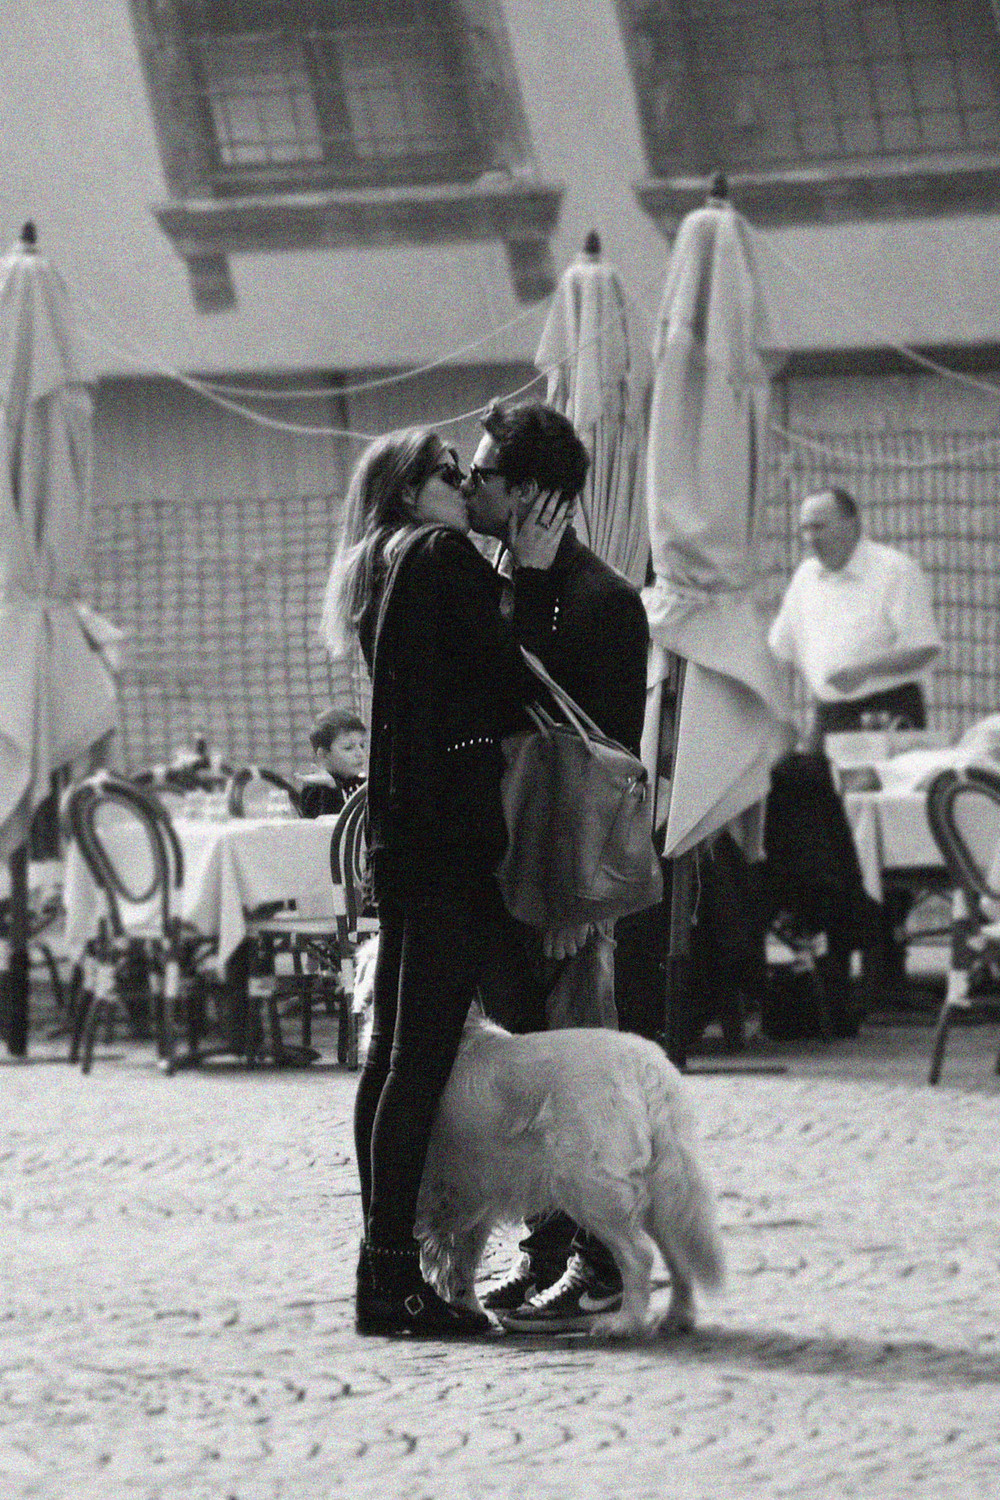 kissing couple in Italy in black and white, romantic embrace with a dog